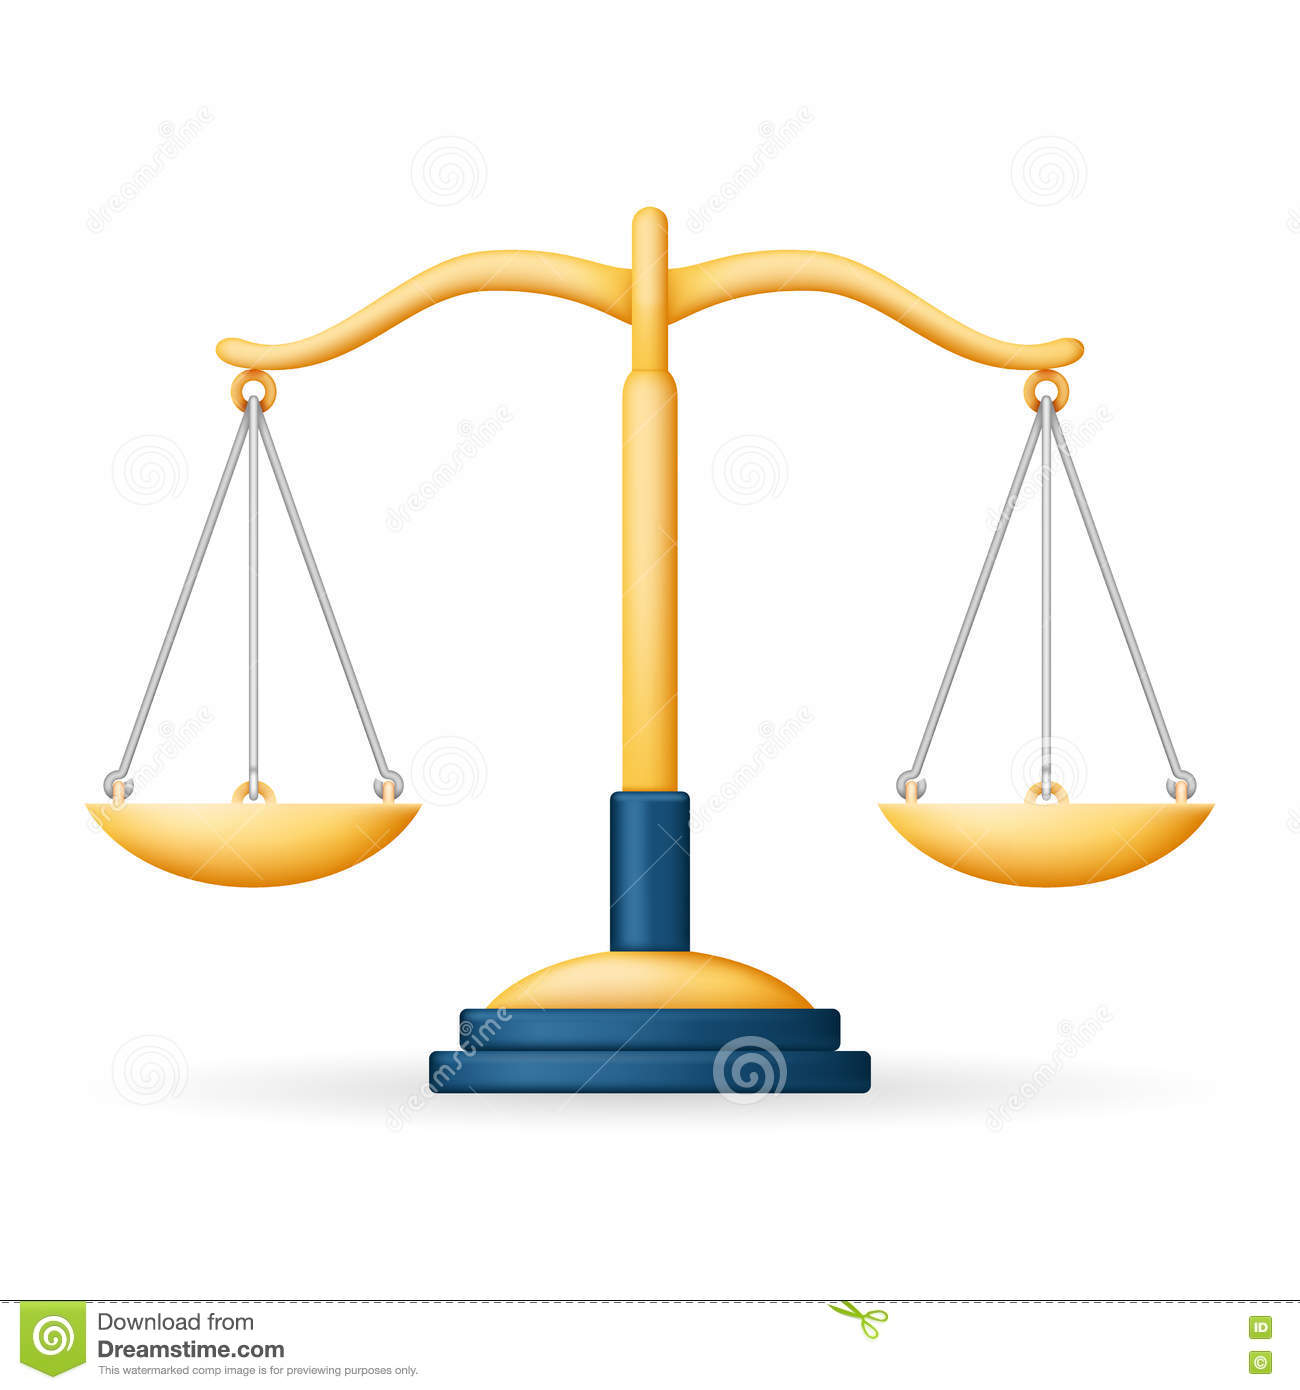 Realistic justice scales law balance symbol icon 3d design vector realistic justice scales law balance symbol icon 3d design vector illustration biocorpaavc Images